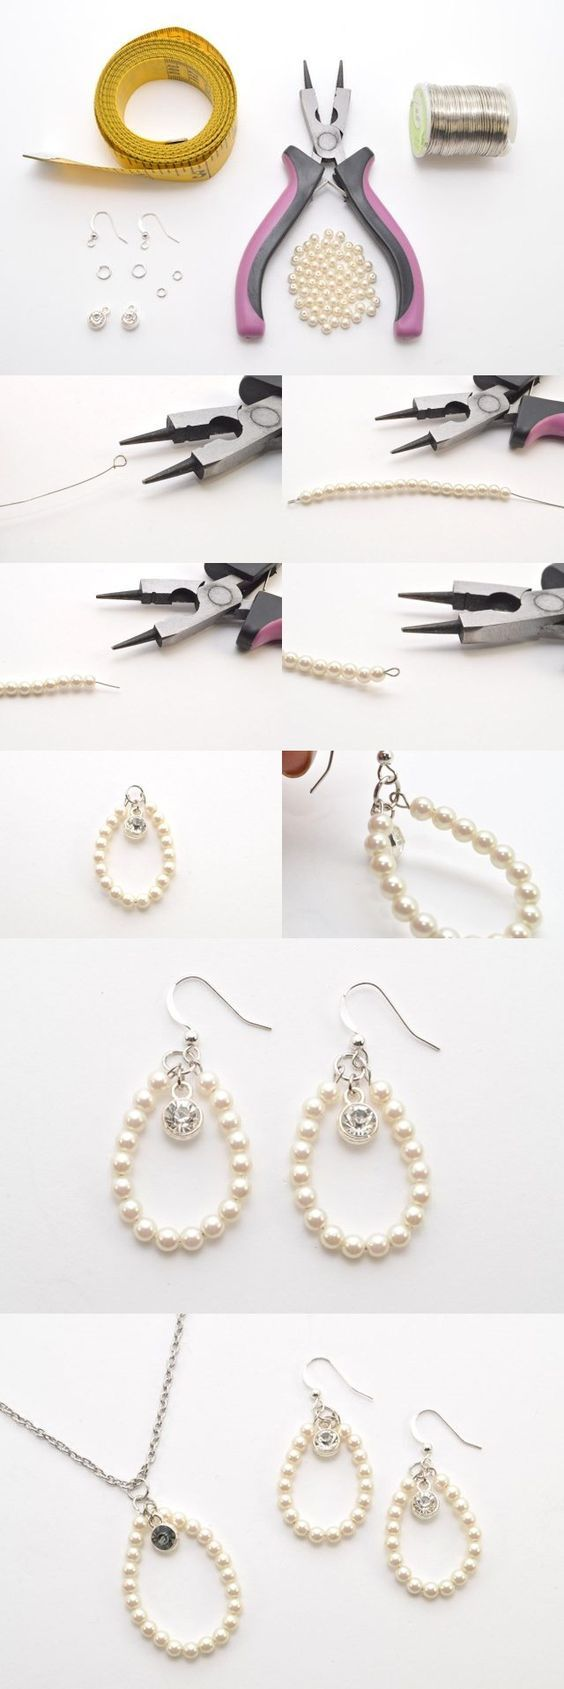 Delighted Diy Jewelry Set With Pearls Step By Step Images ...